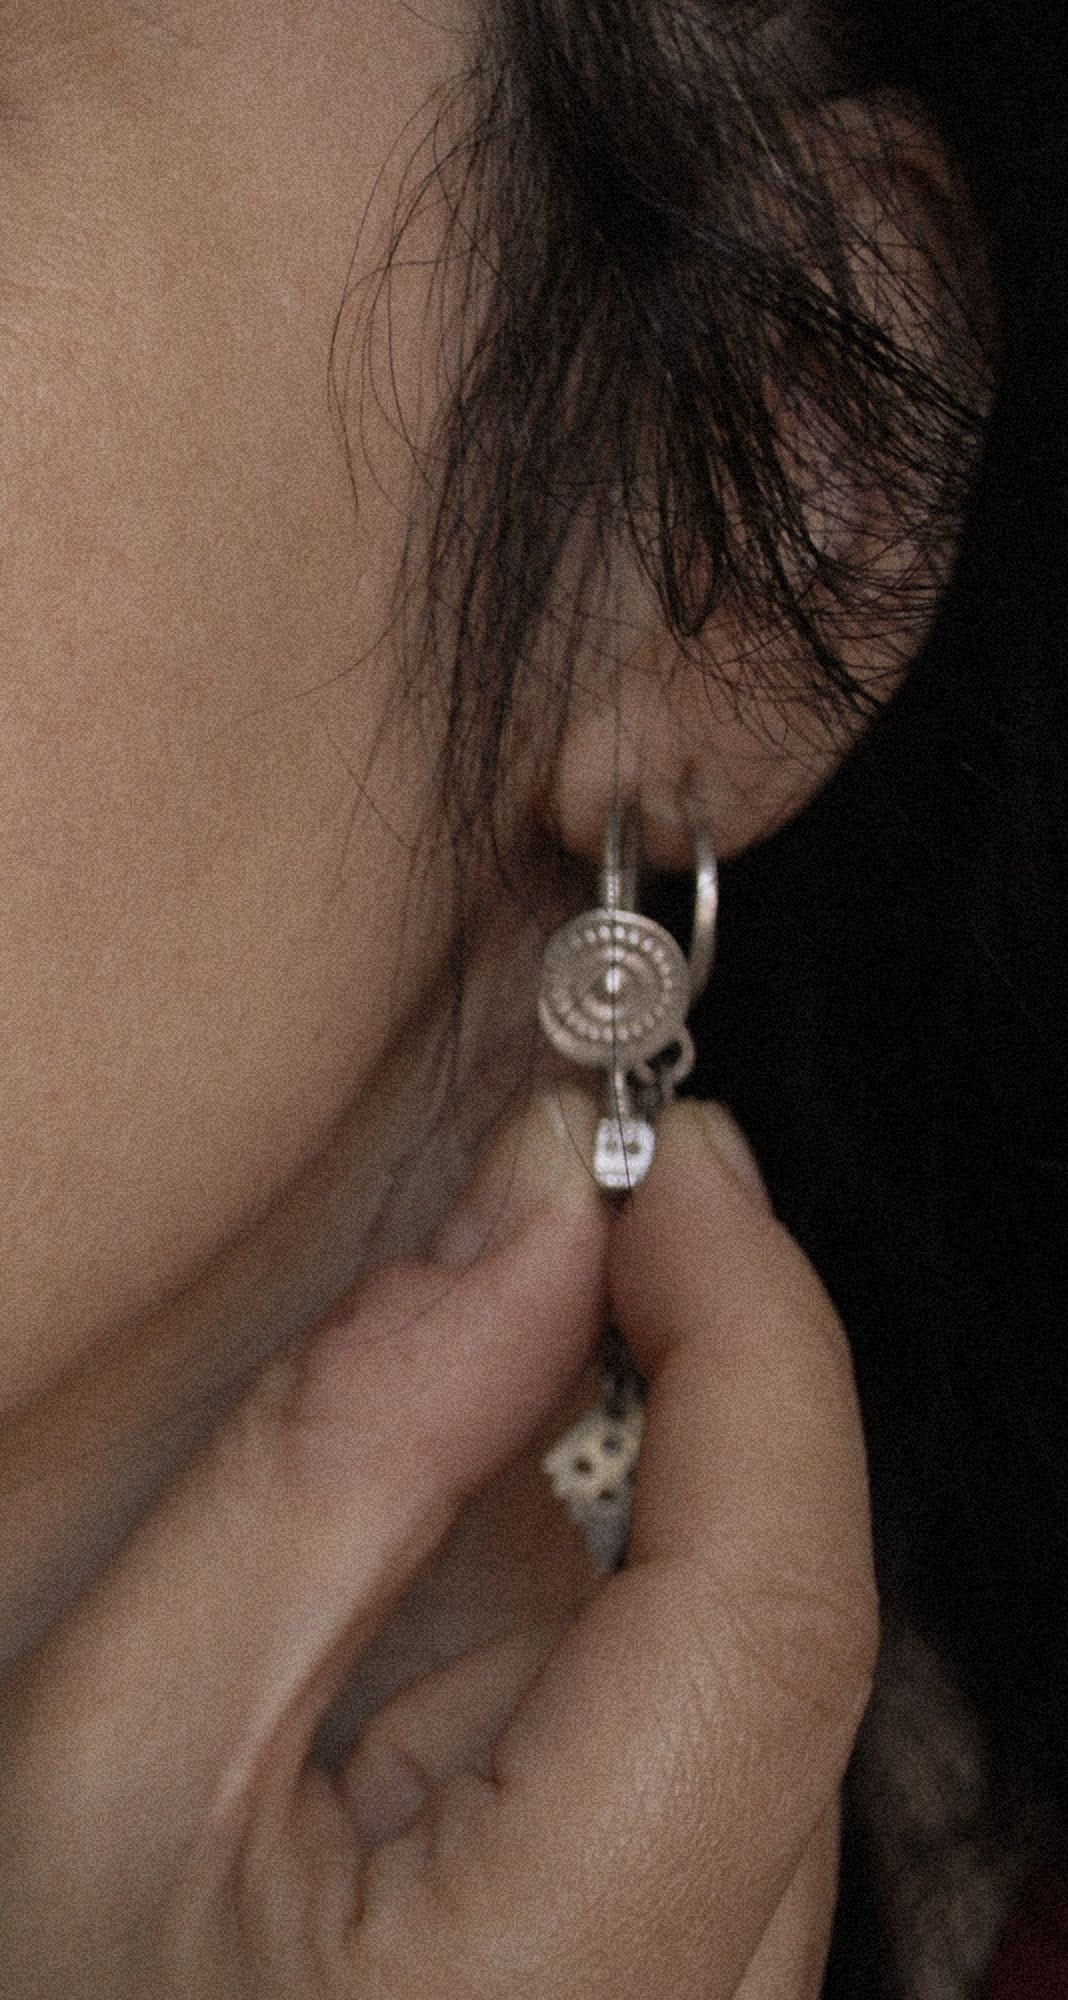 Tribal Indian Earrings from Gujarat - Rajasthani Earrings - Rajasthani Jewelry - Tribal Earrings - Gujarati Jewelry